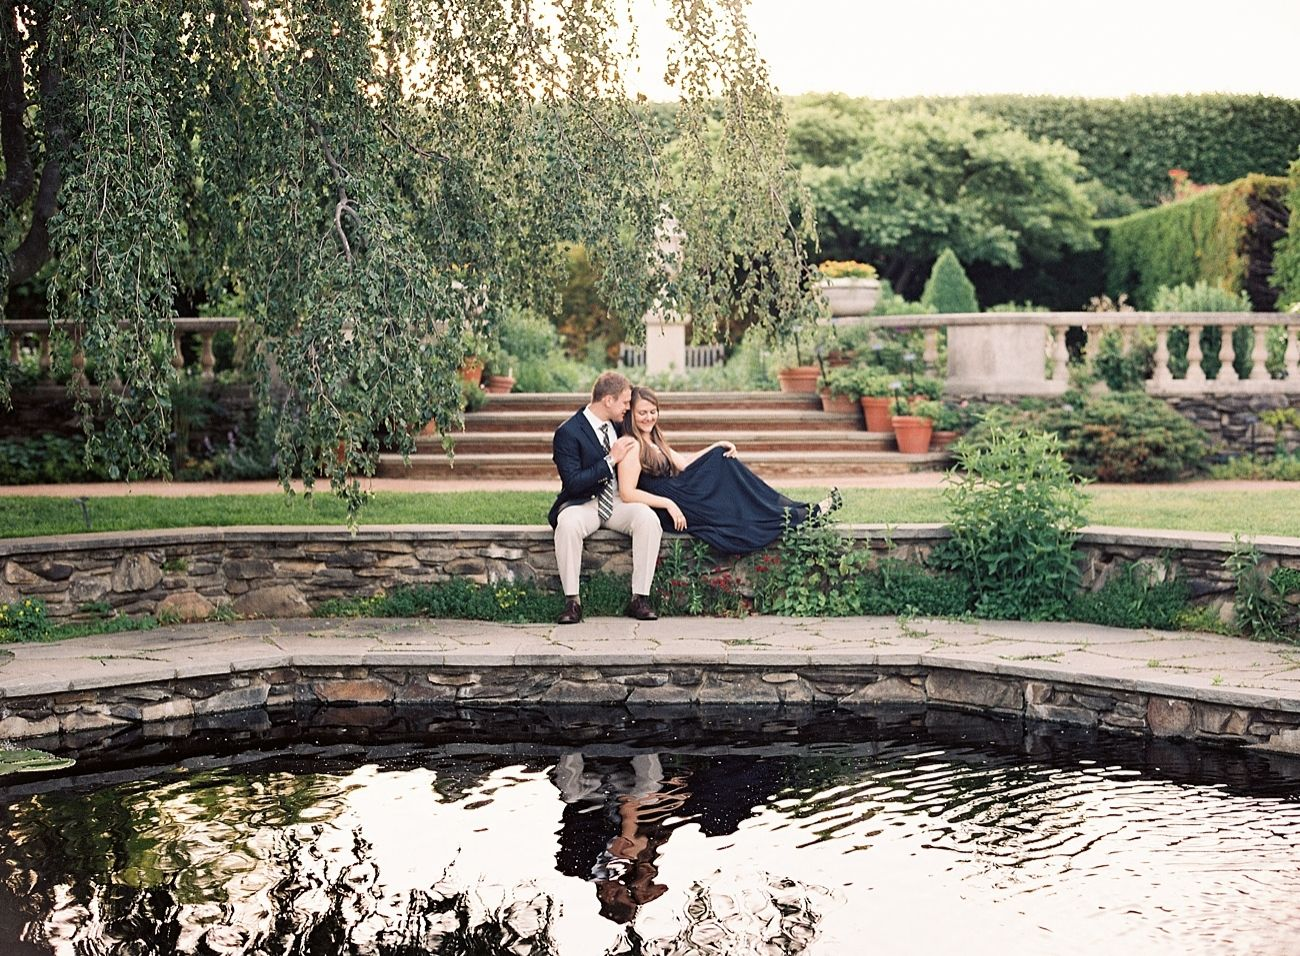 Chicago Botanic Garden Engagement Session Chicago Botanic Garden